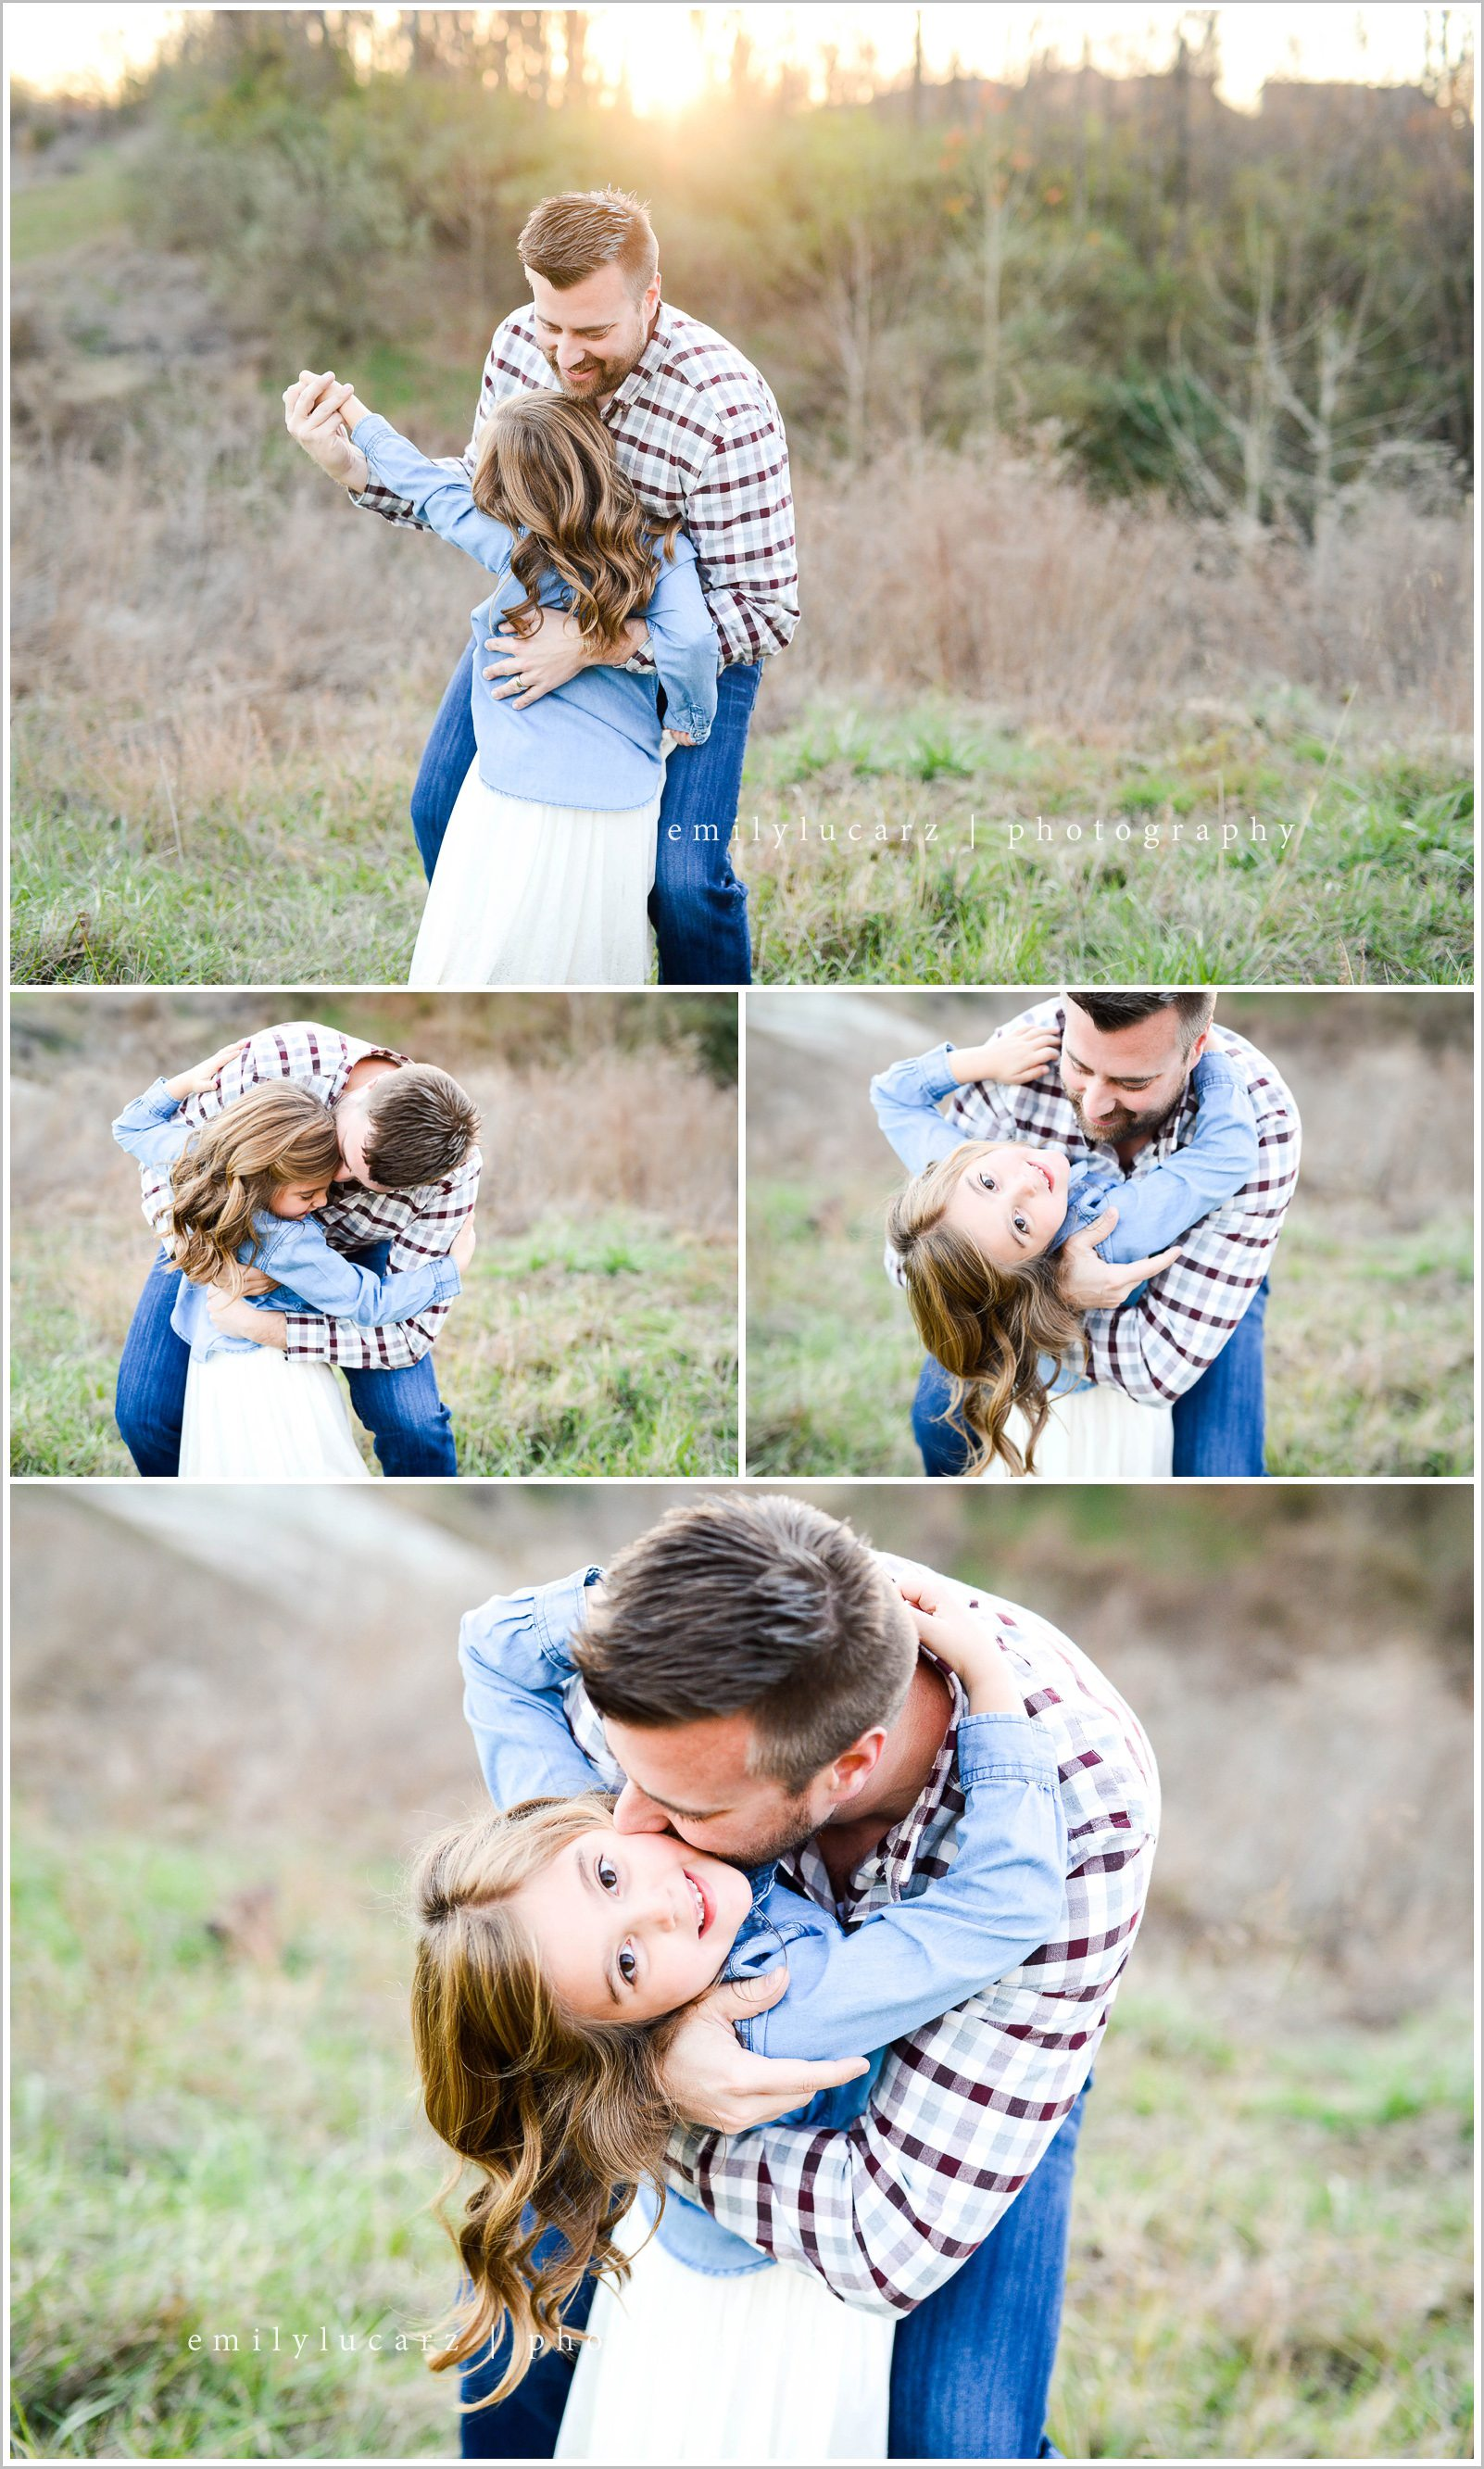 dad and daughter photo shoot ideas